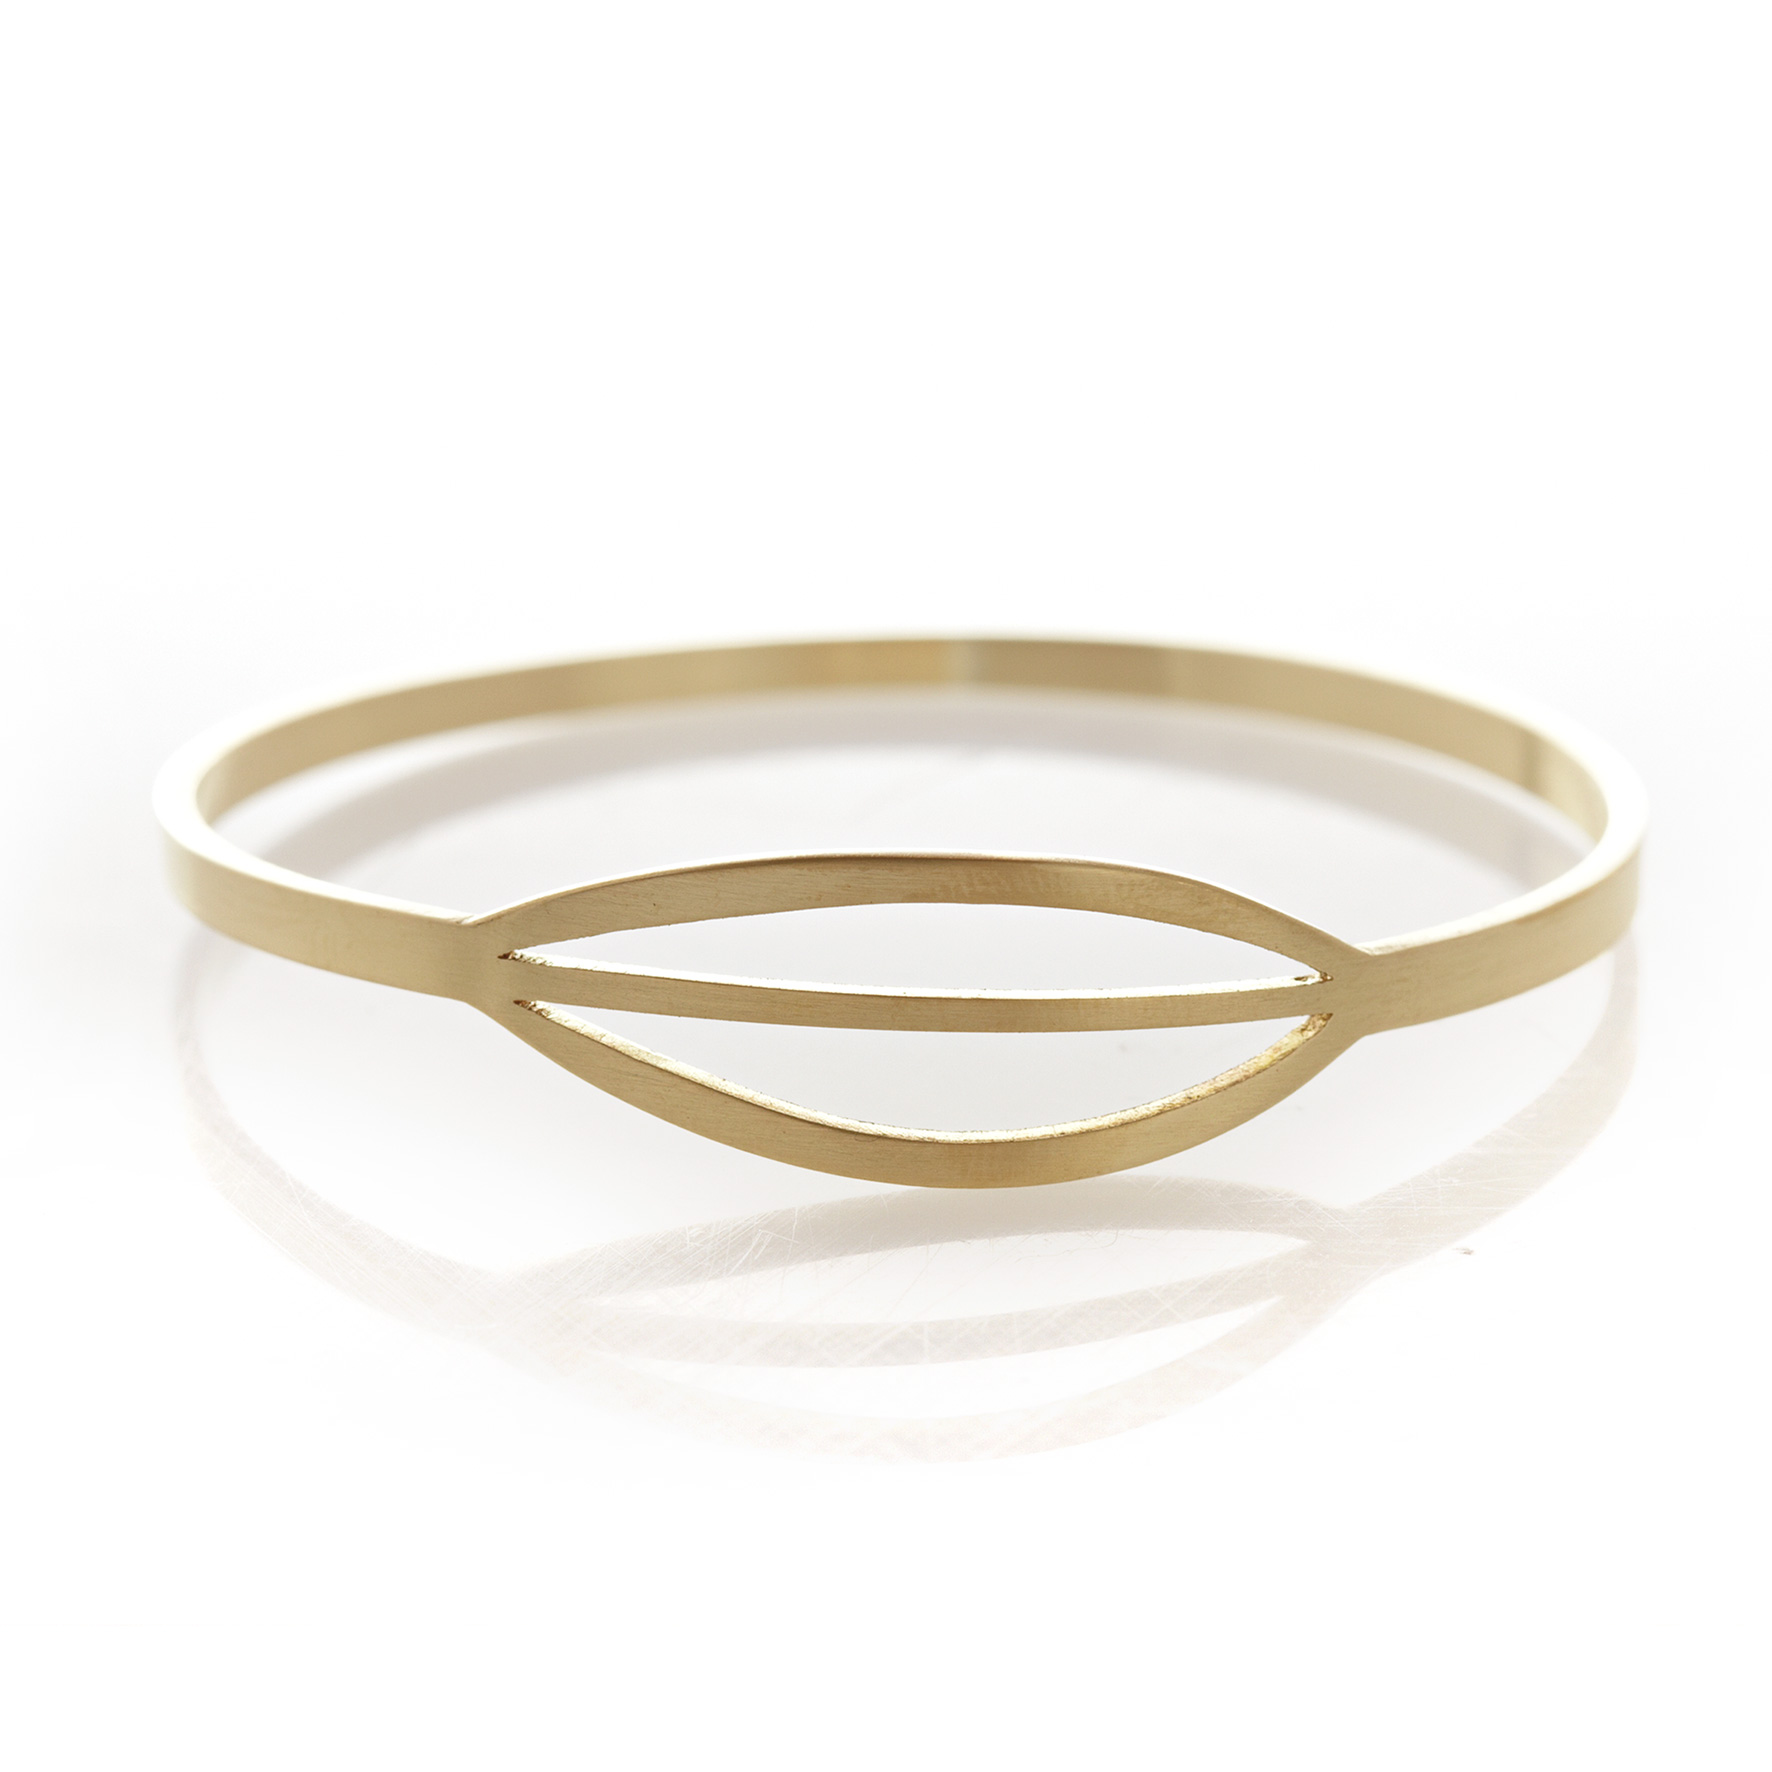 Pod striped brass bangle